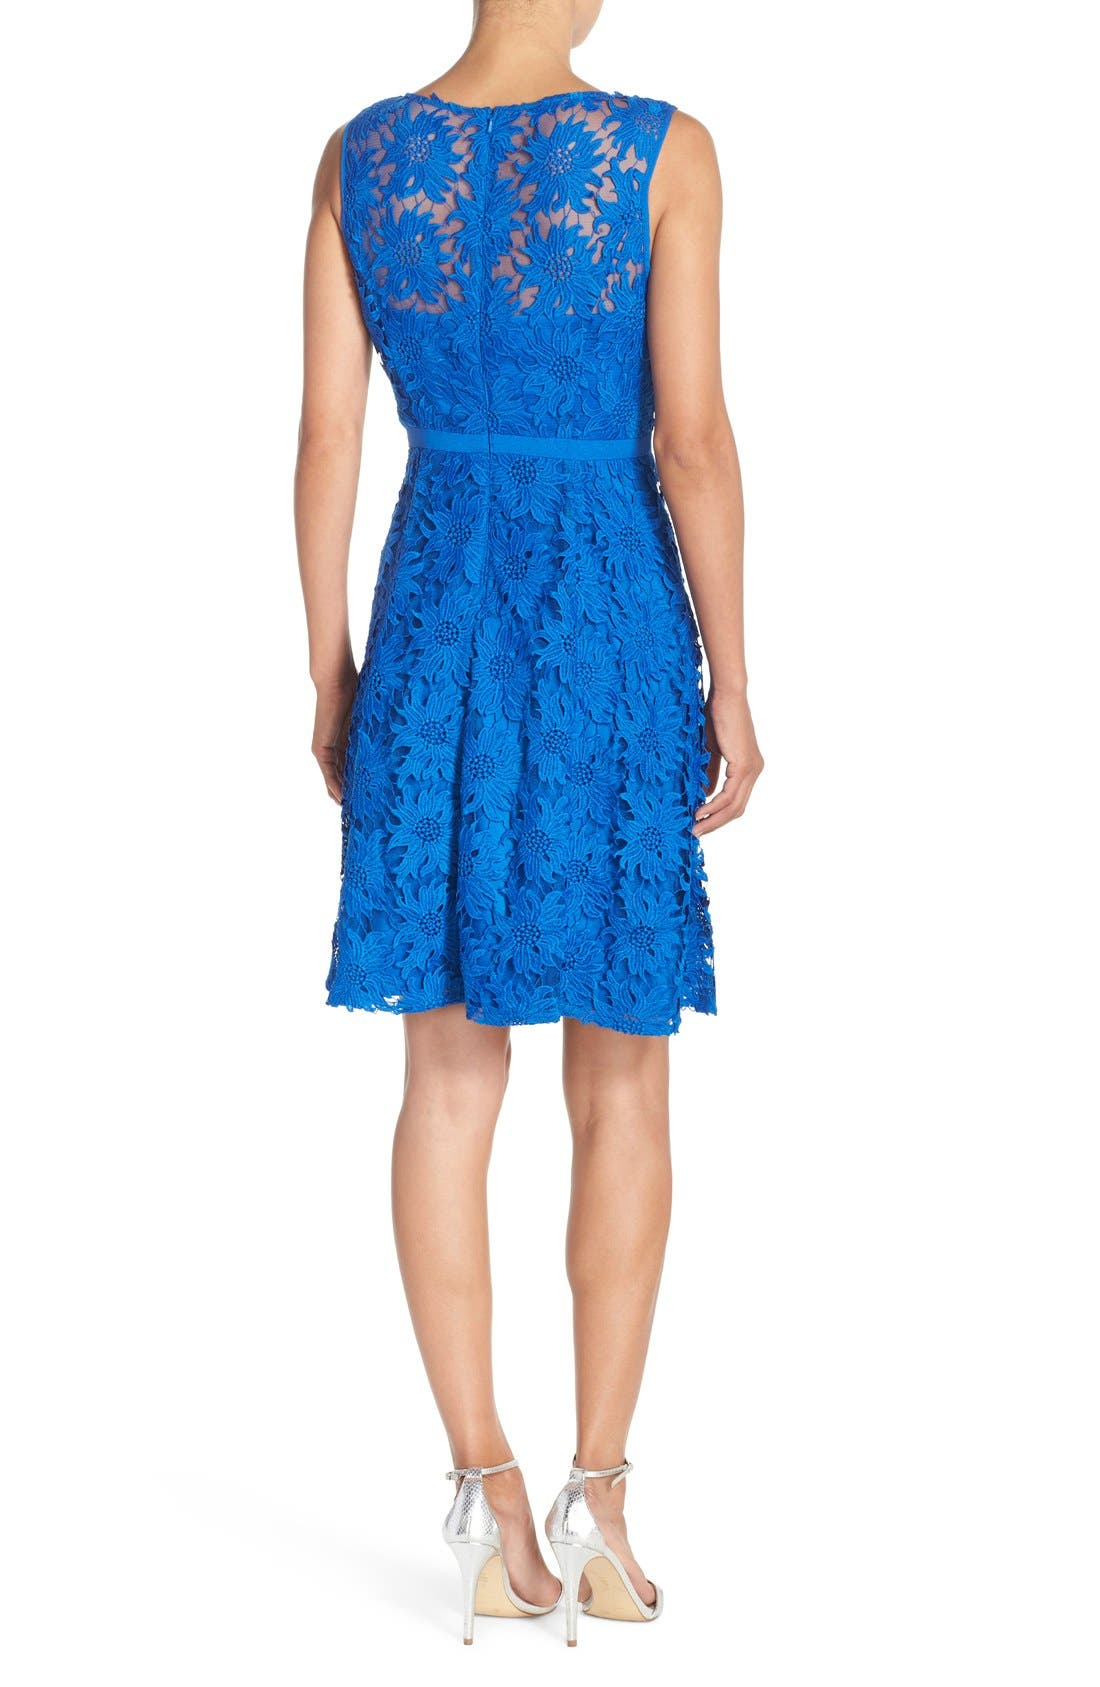 ADRIANNA PAPELL, Illusion Floral Lace Fit & Flare Dress, Alternate thumbnail 3, color, 433